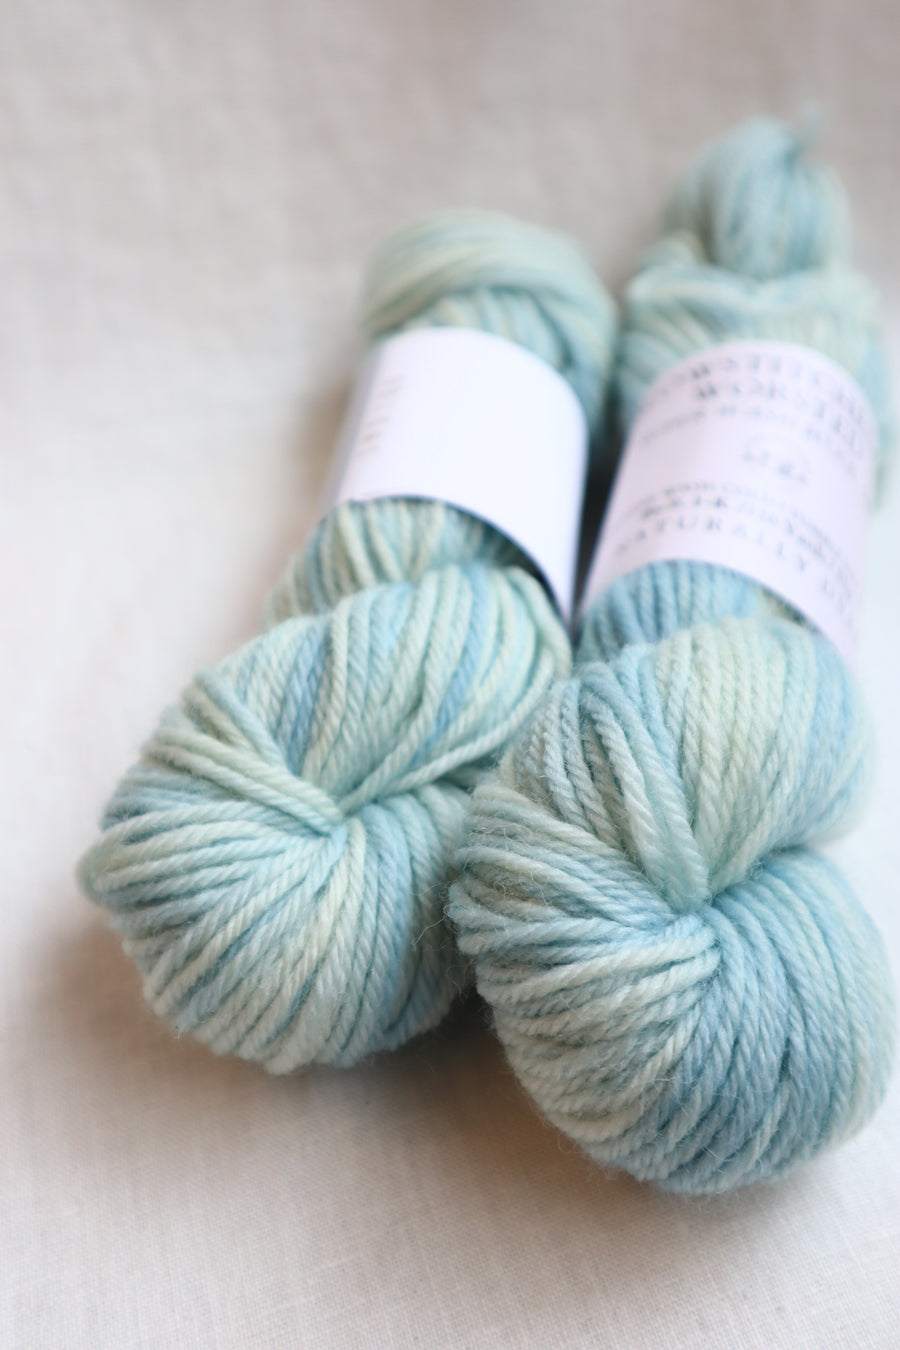 Naturally Dyed Yarn / Worsted / Indigo & White Light